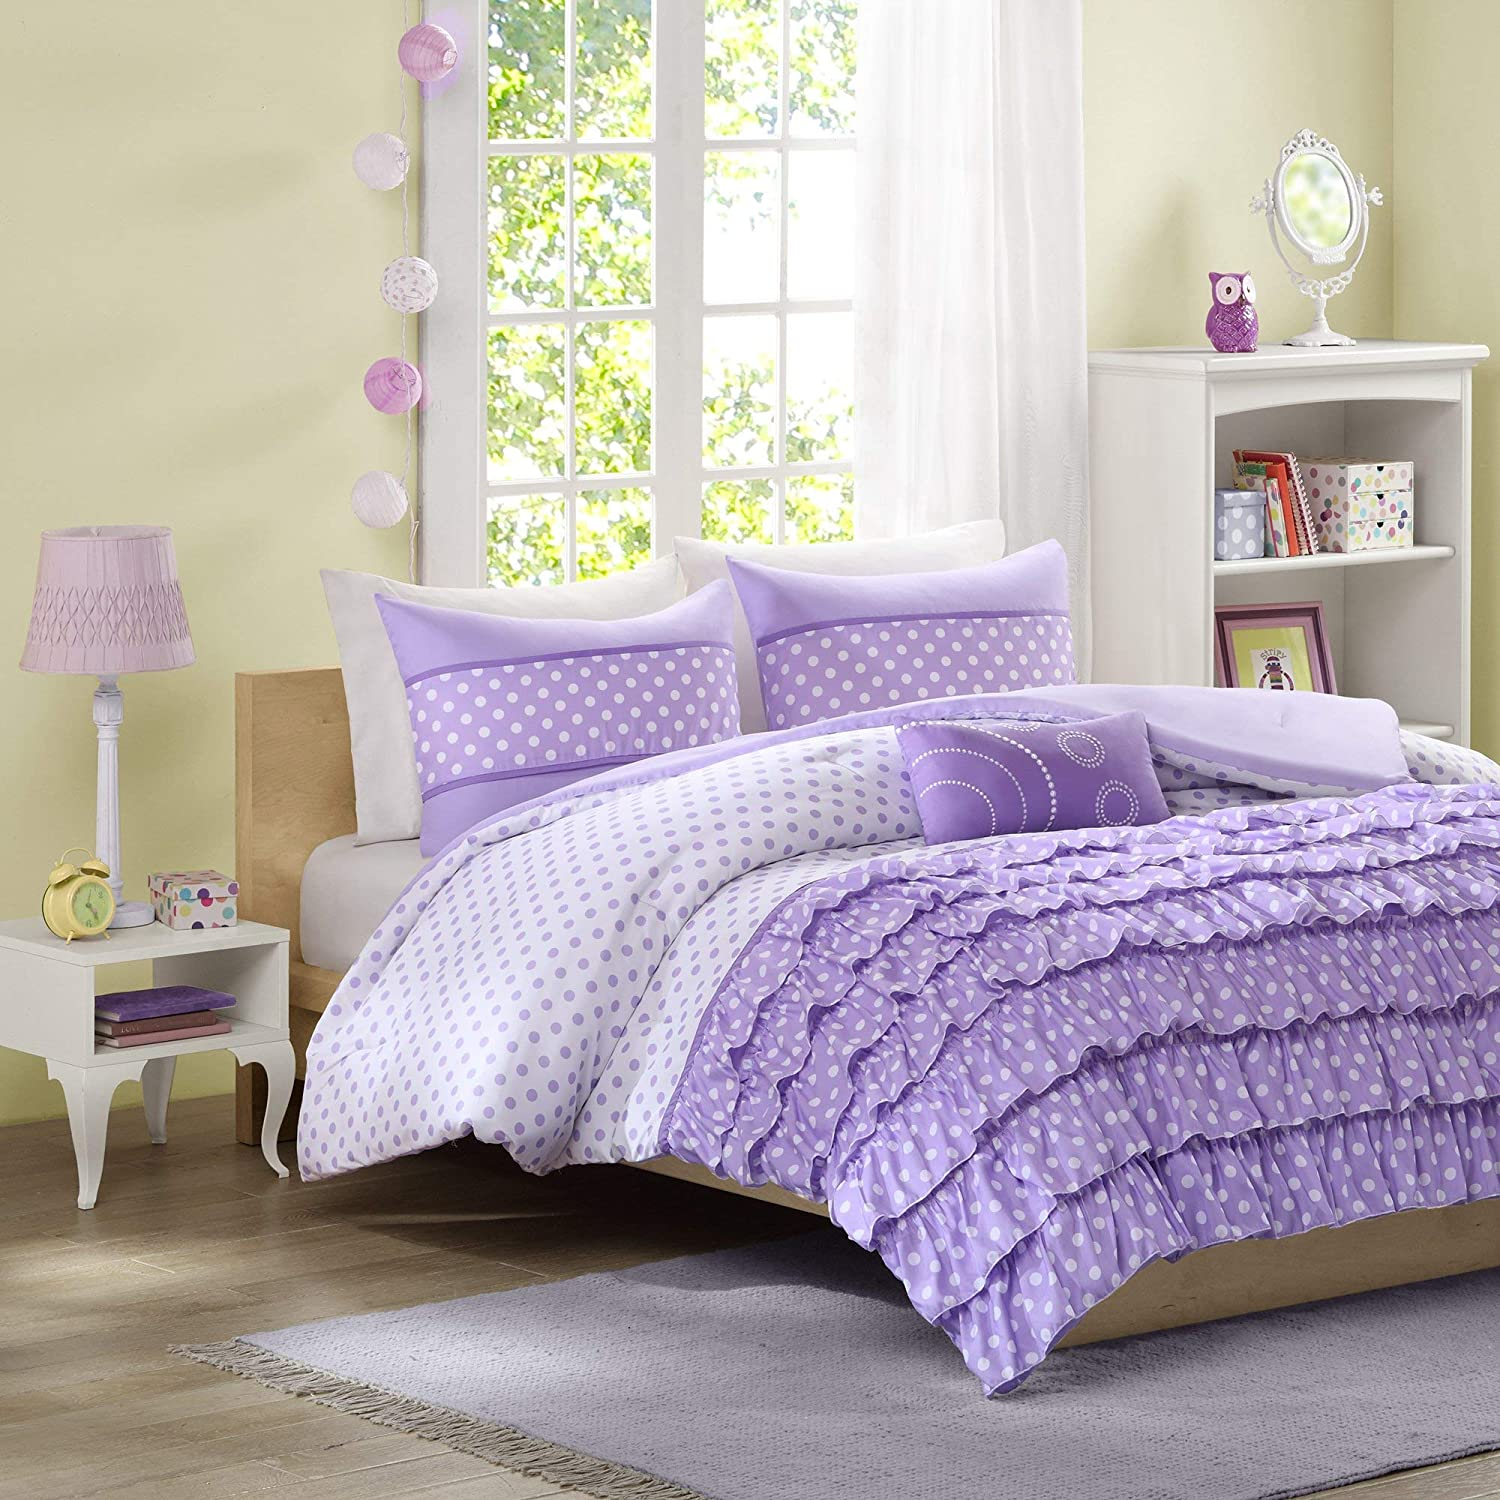 Mi Zone Morgan Comforter Set Twin/Twin XL Size - Purple, Polka Dot – 3 Piece Bed Sets – Ultra Soft Microfiber Teen Bedding for Girls Bedroom JLA Home MZ10-231